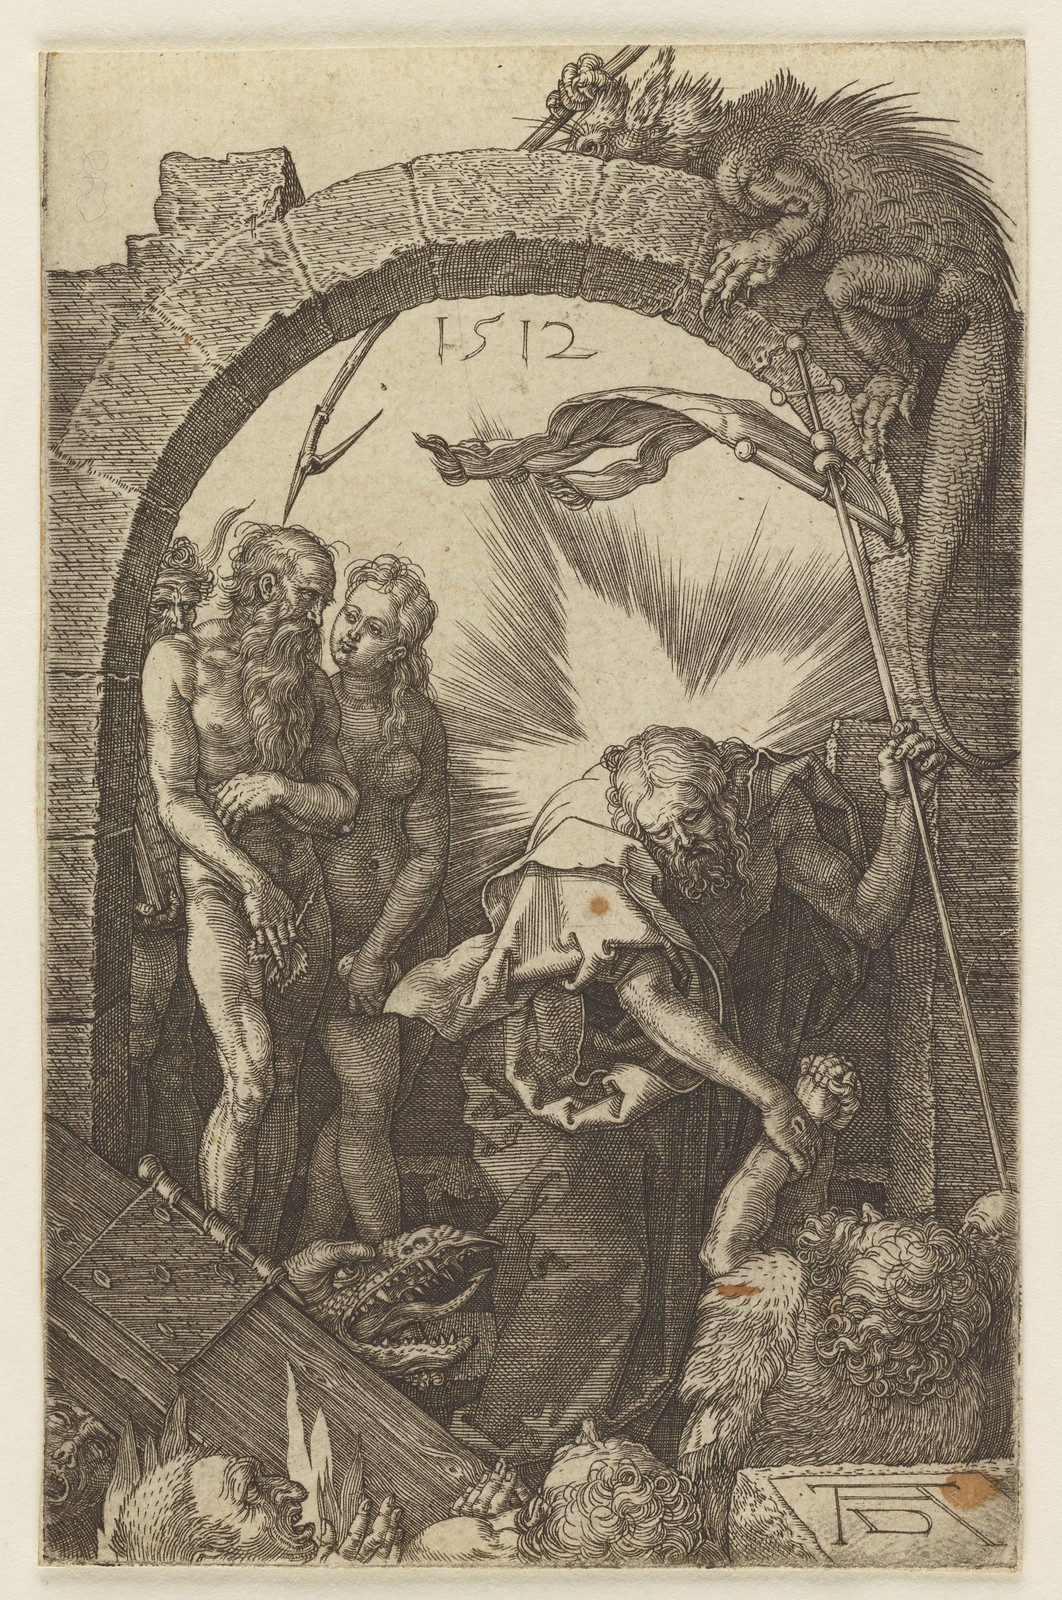 Albrecht Dürer - Harrowing of Hell, from the Engraved Passion series,  1512